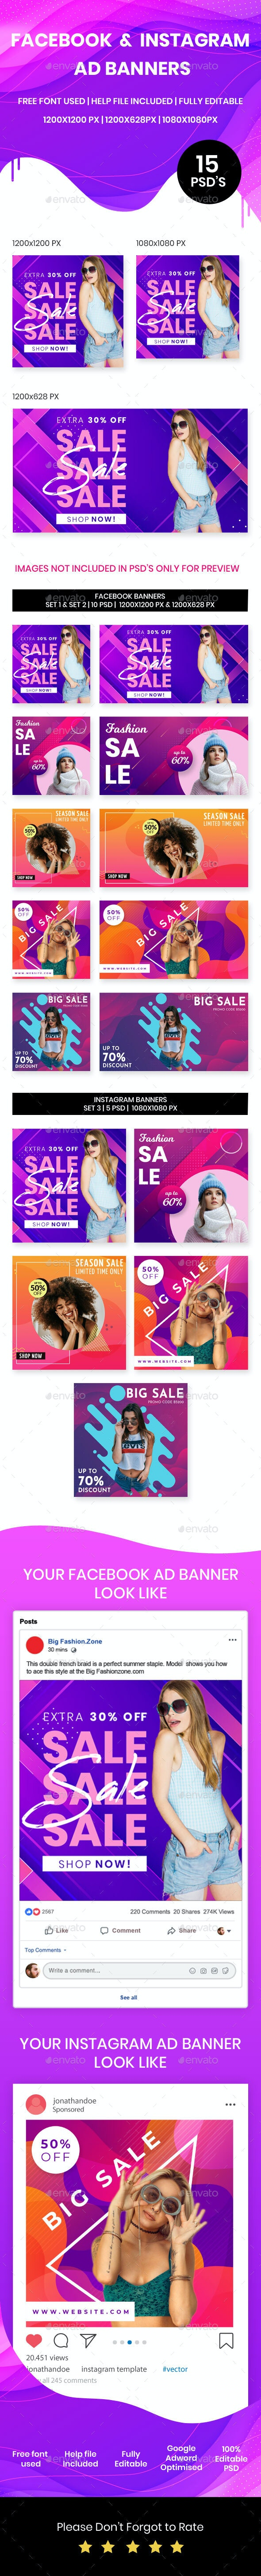 Facebook & Instagram Fashion AD Banners - Banners & Ads Web Elements